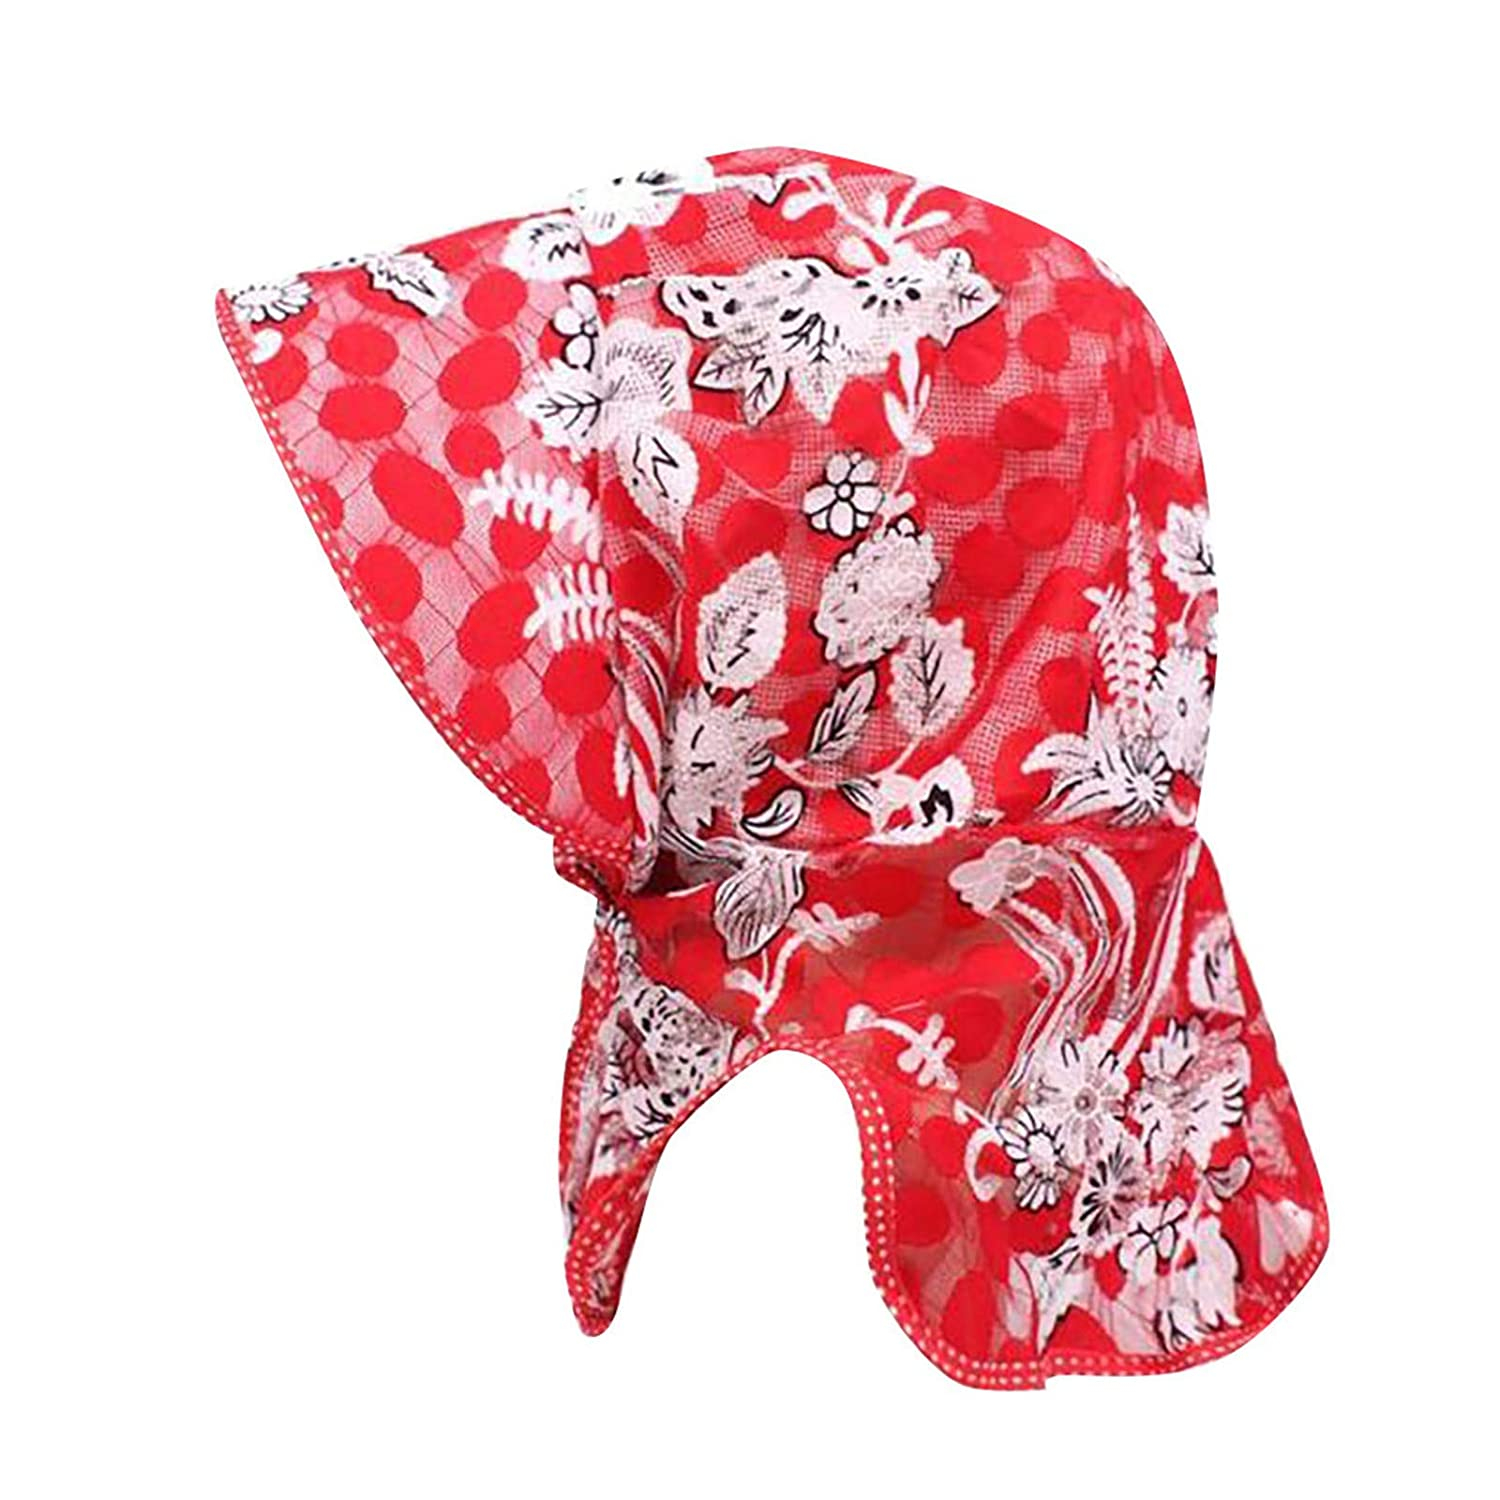 BOOBODA Womens Summer Visor Printed Hat Foldable Outdoor Activities UV Protecting Sun Hats with Neck Flap